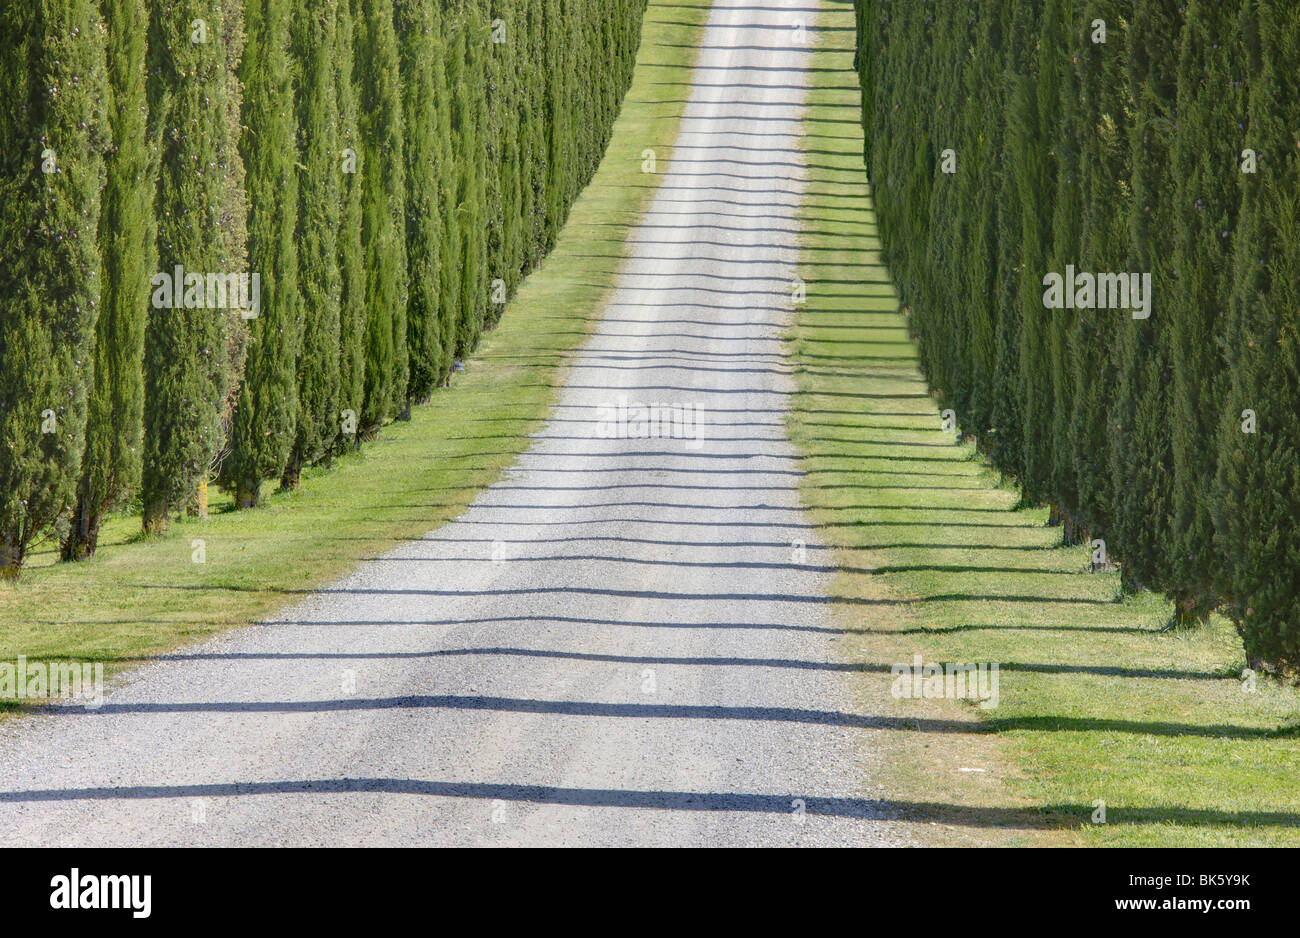 Abstract view of cypress trees and their shadows across gravel road, near Pienza, Tuscany, Italy, Europe - Stock Image